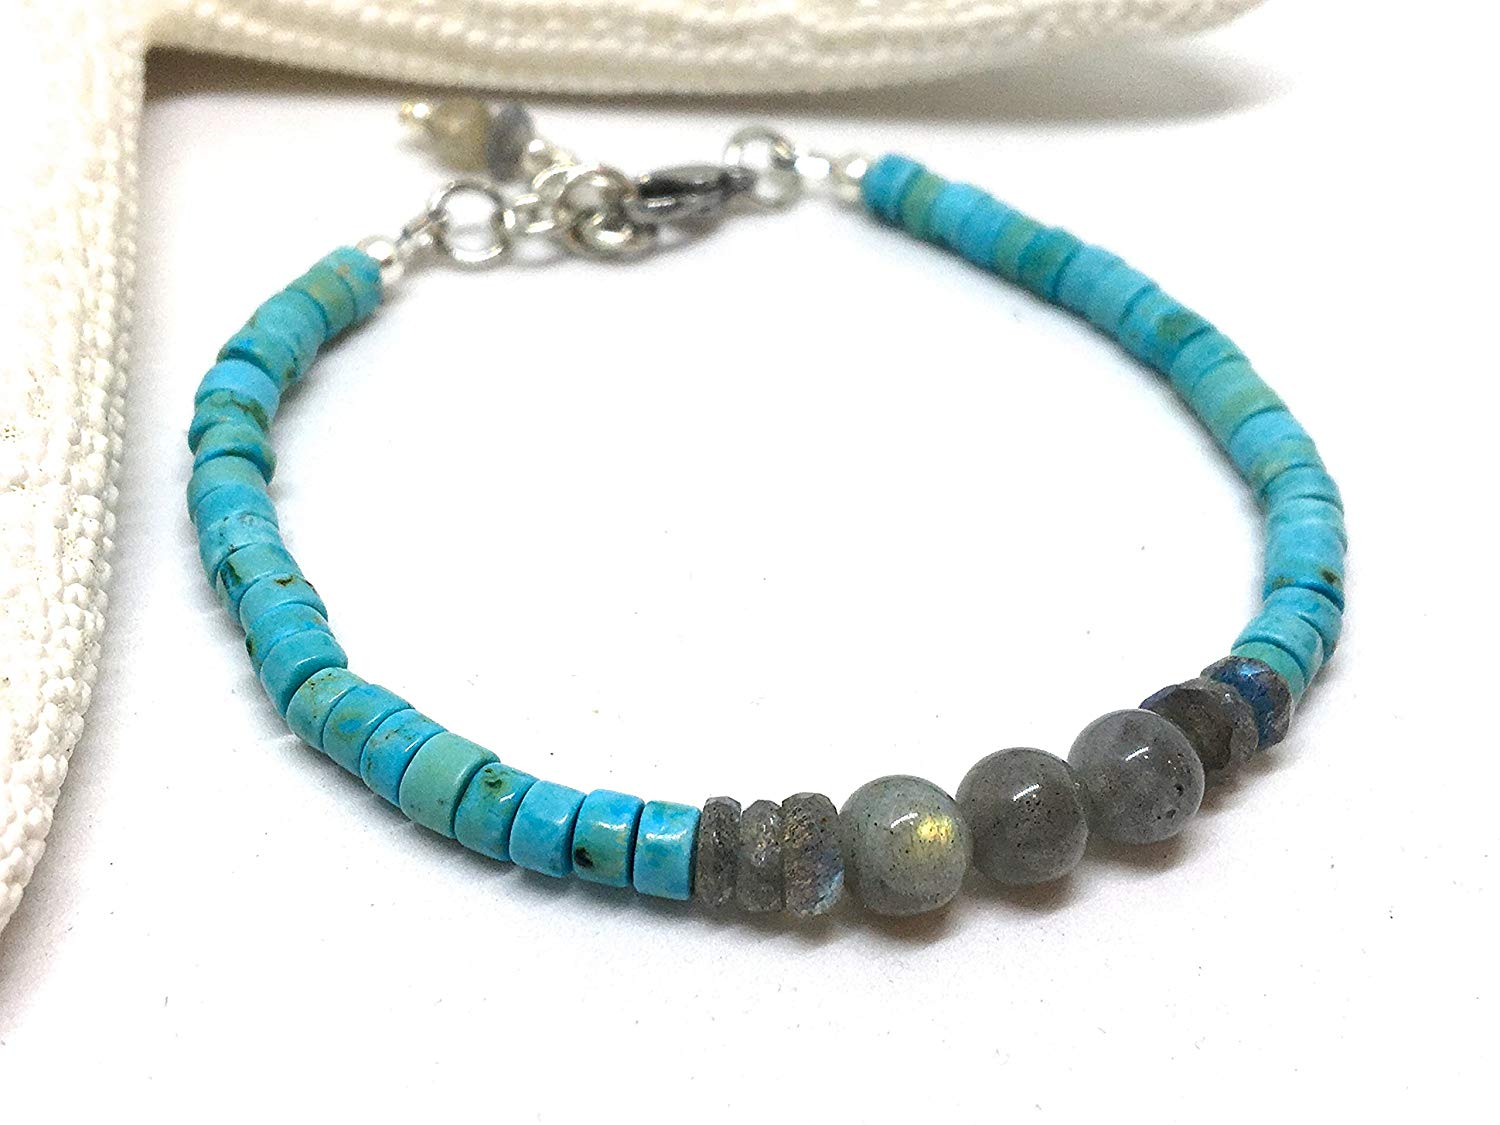 Turquoise Heshi Bracelet, Labradorite Bracelet, Beaded Bracelet, Boho jewelry, Turquoise Jewelry, Stacking Bracelet, Gifts for Her, Gemstone